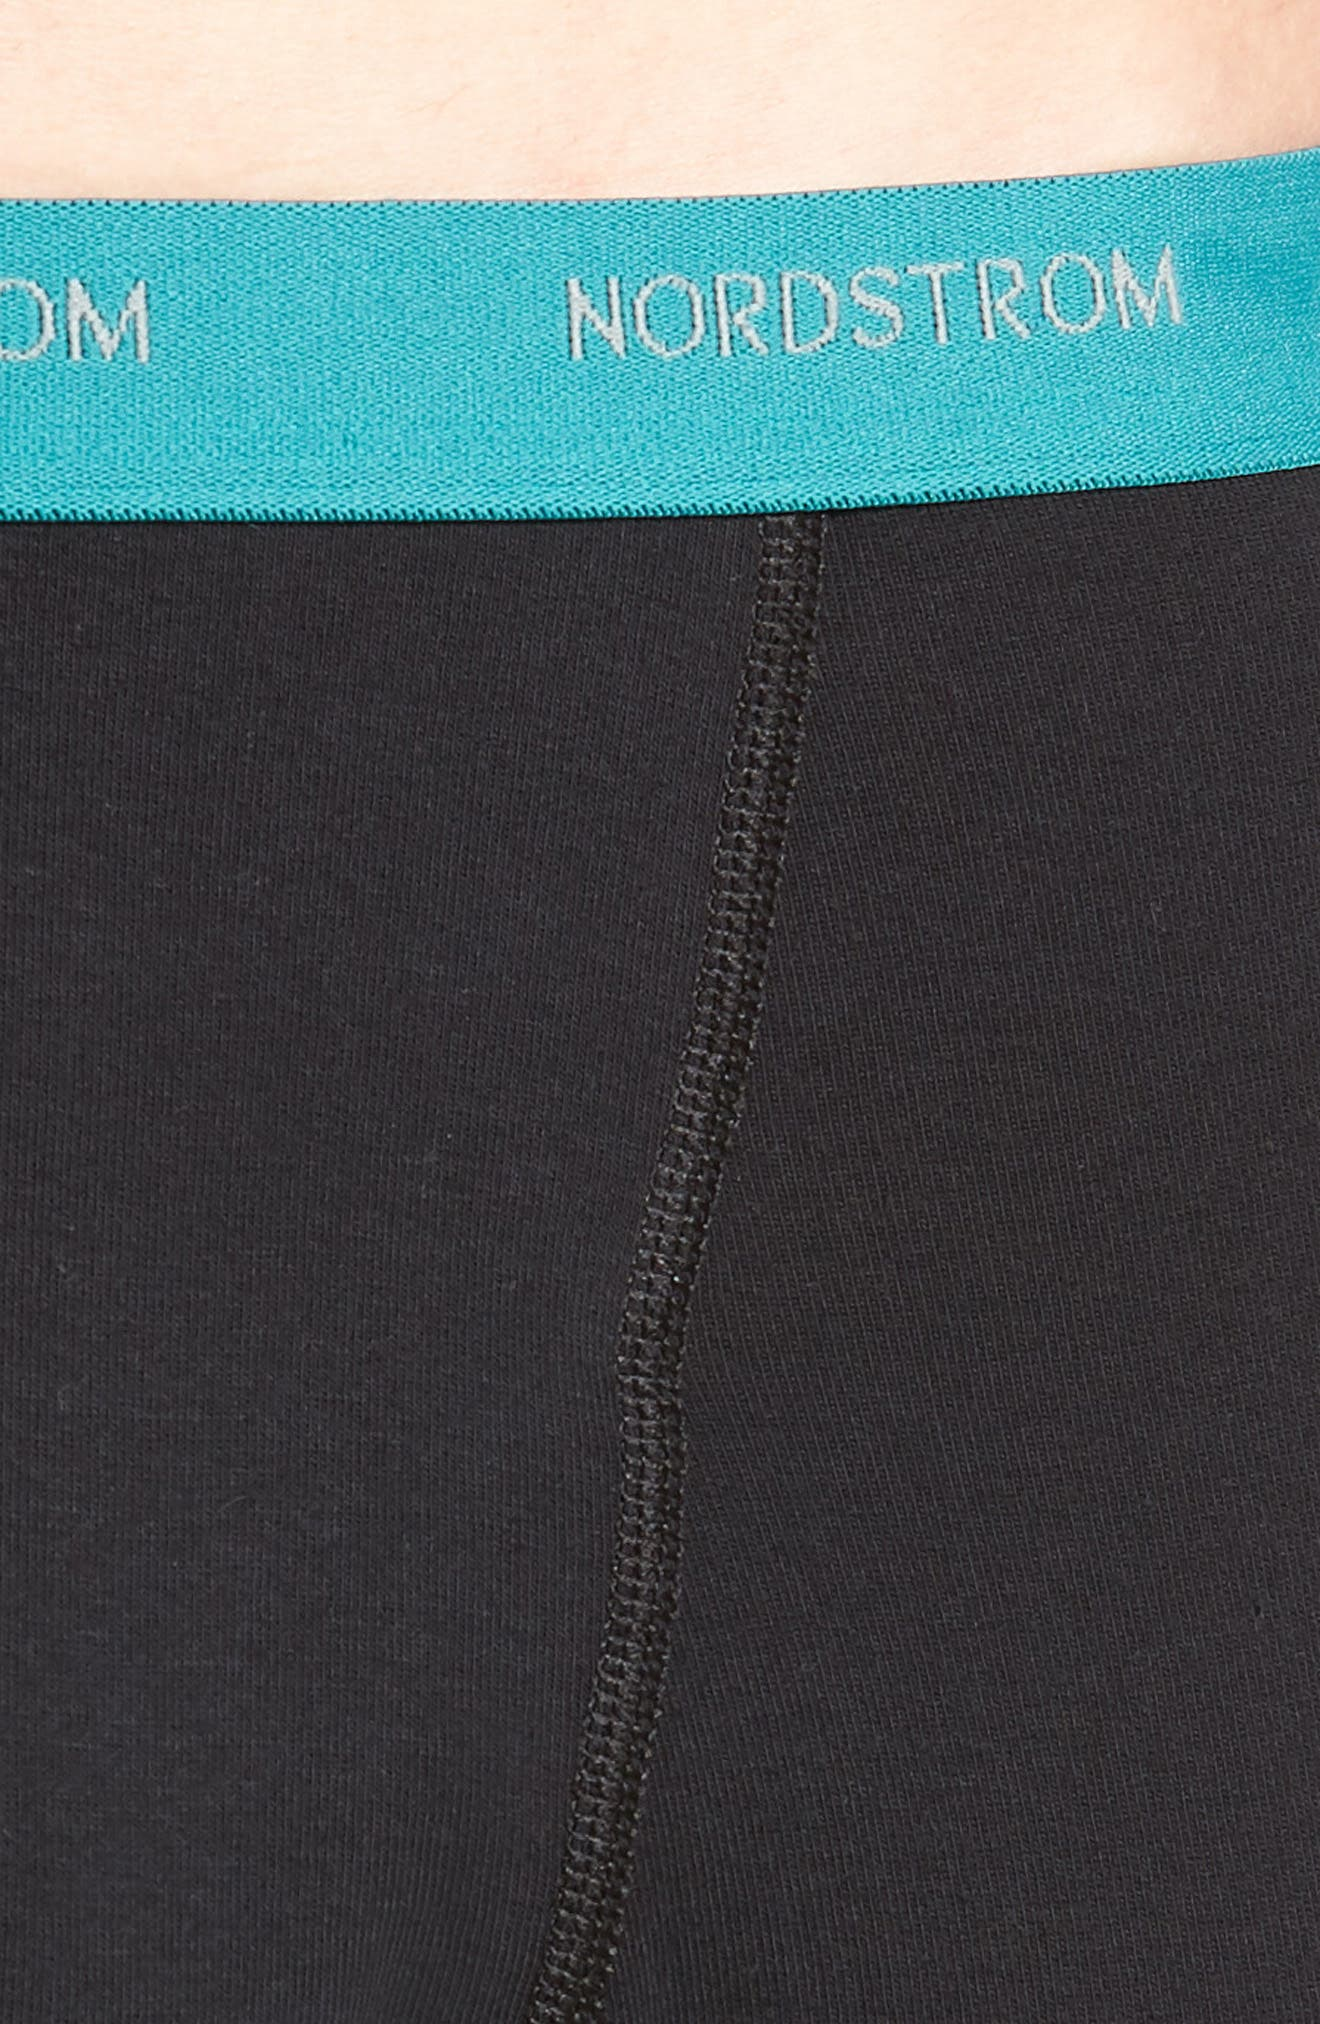 3-Pack Supima<sup>®</sup> Cotton Boxer Briefs,                             Alternate thumbnail 6, color,                             Black- Teal/ Green/ Lime